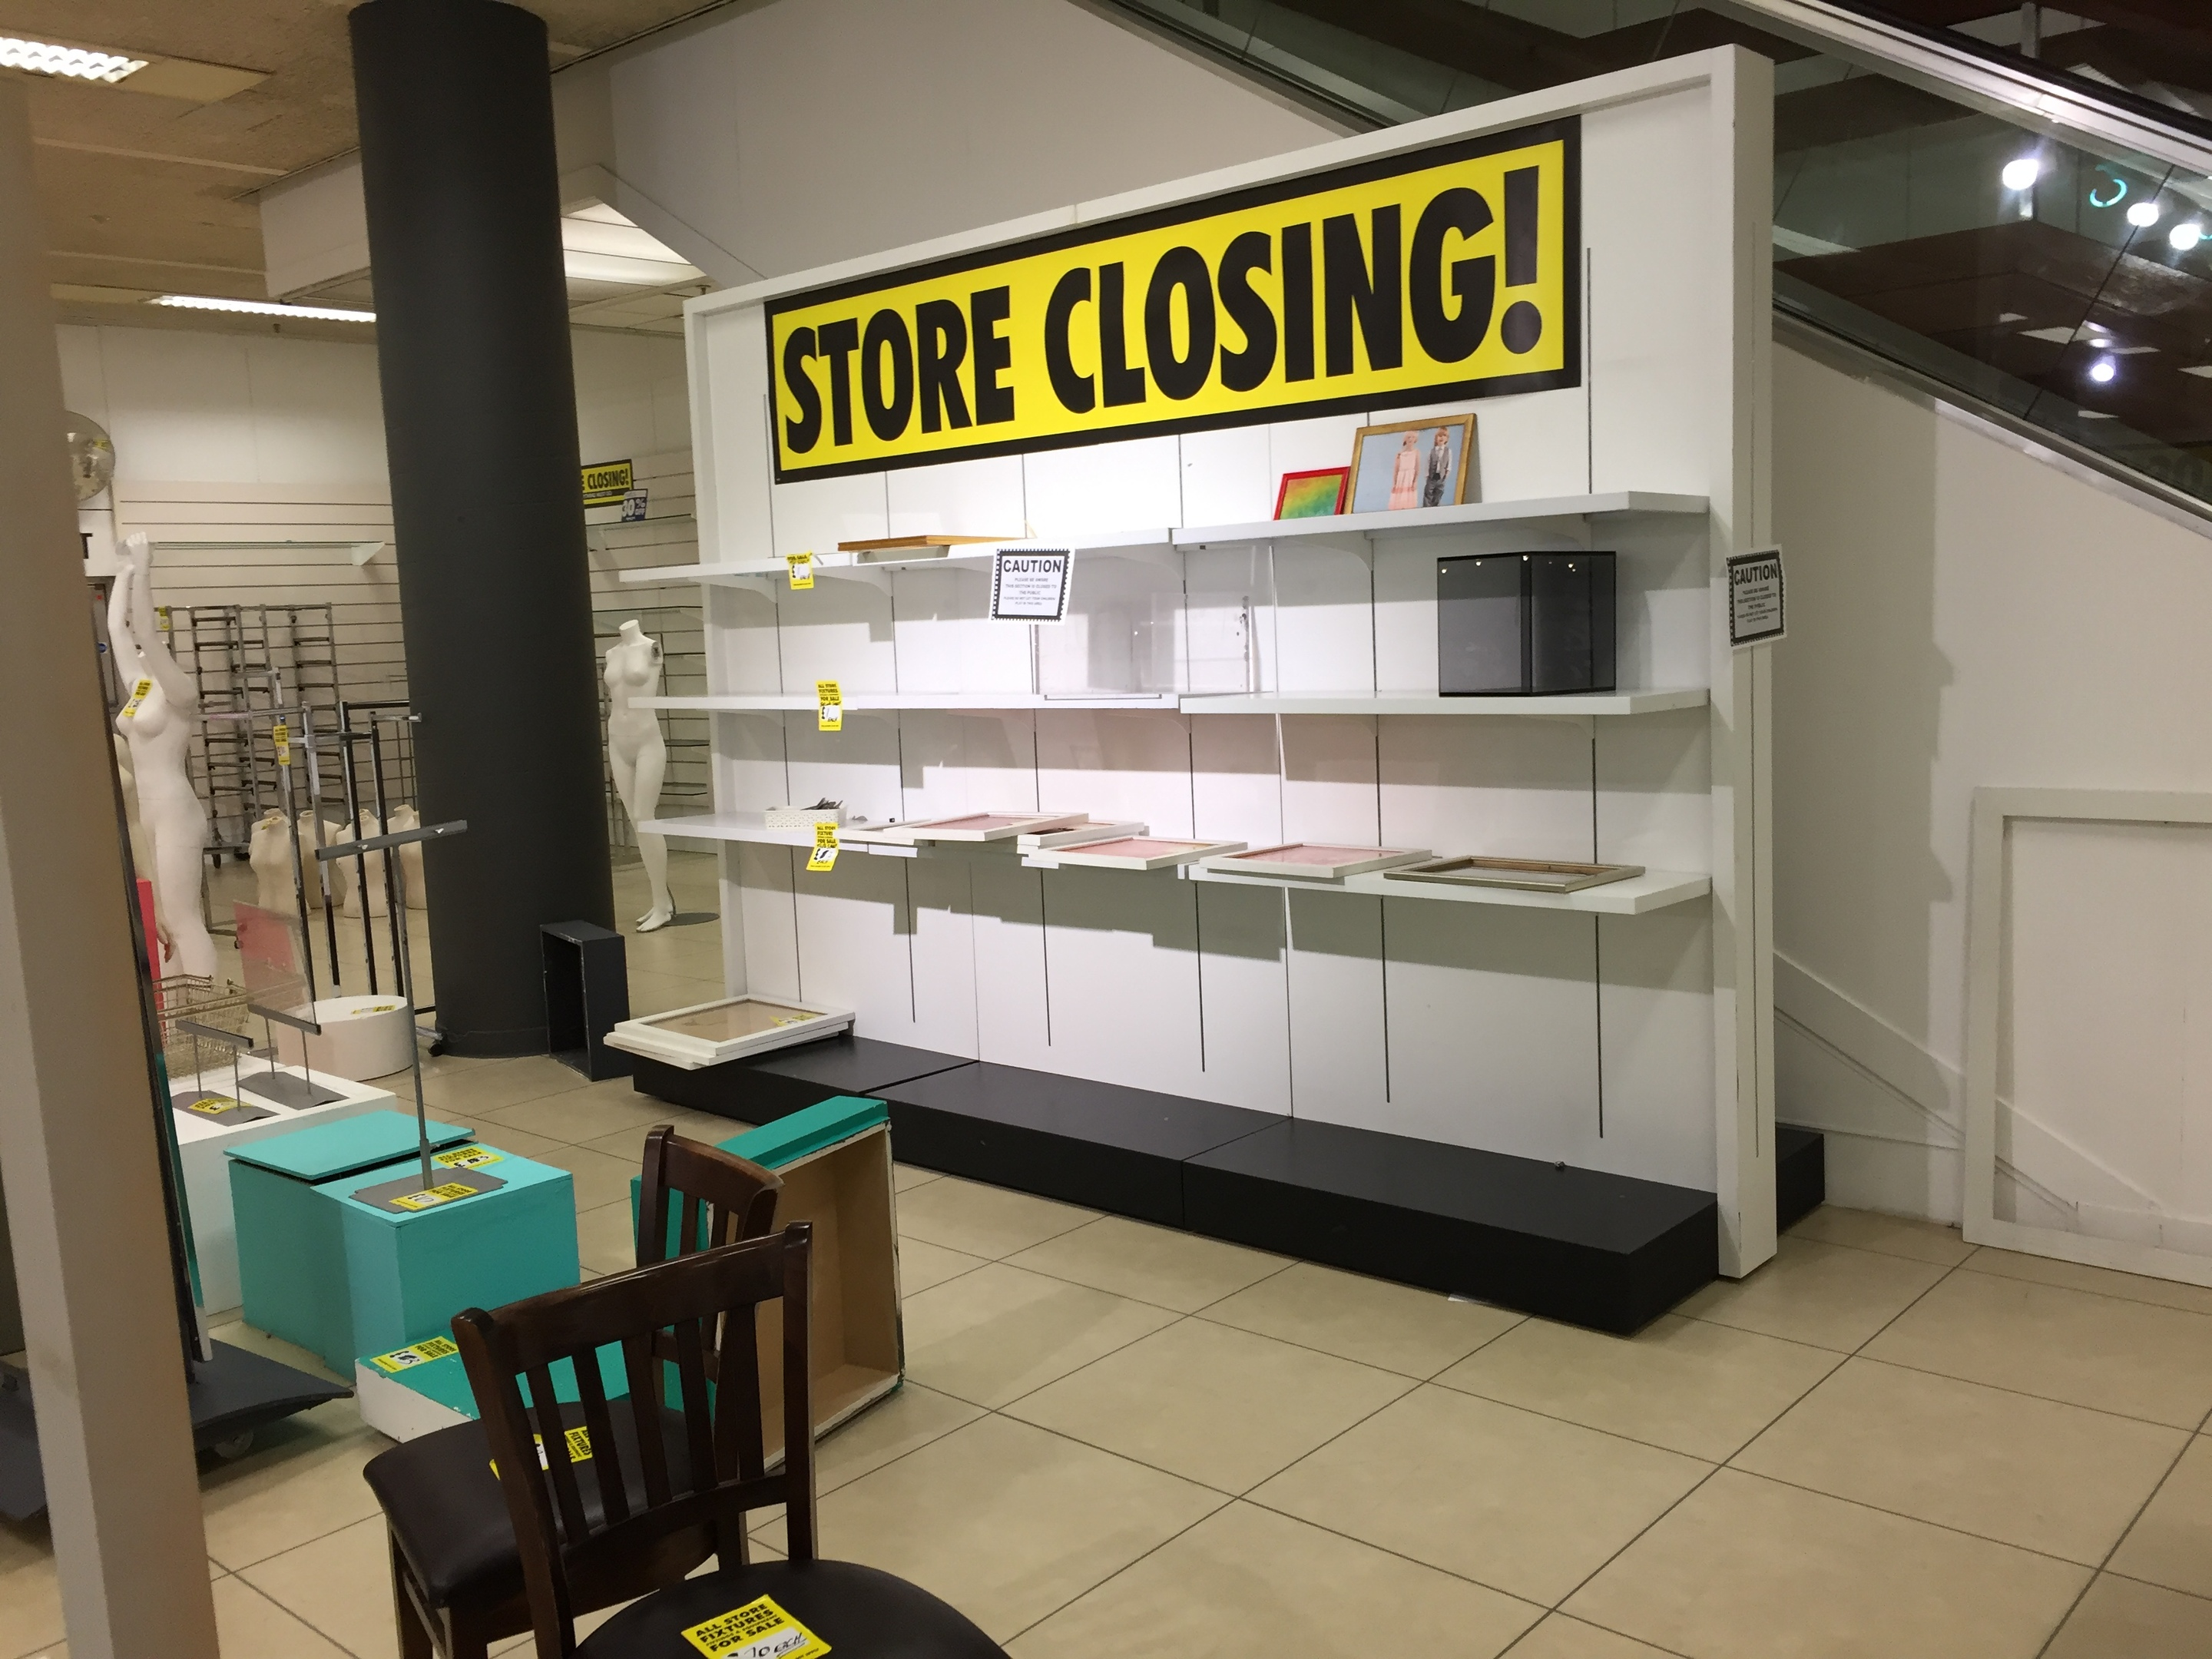 The store is almost empty will bargain hunters clearing the rails